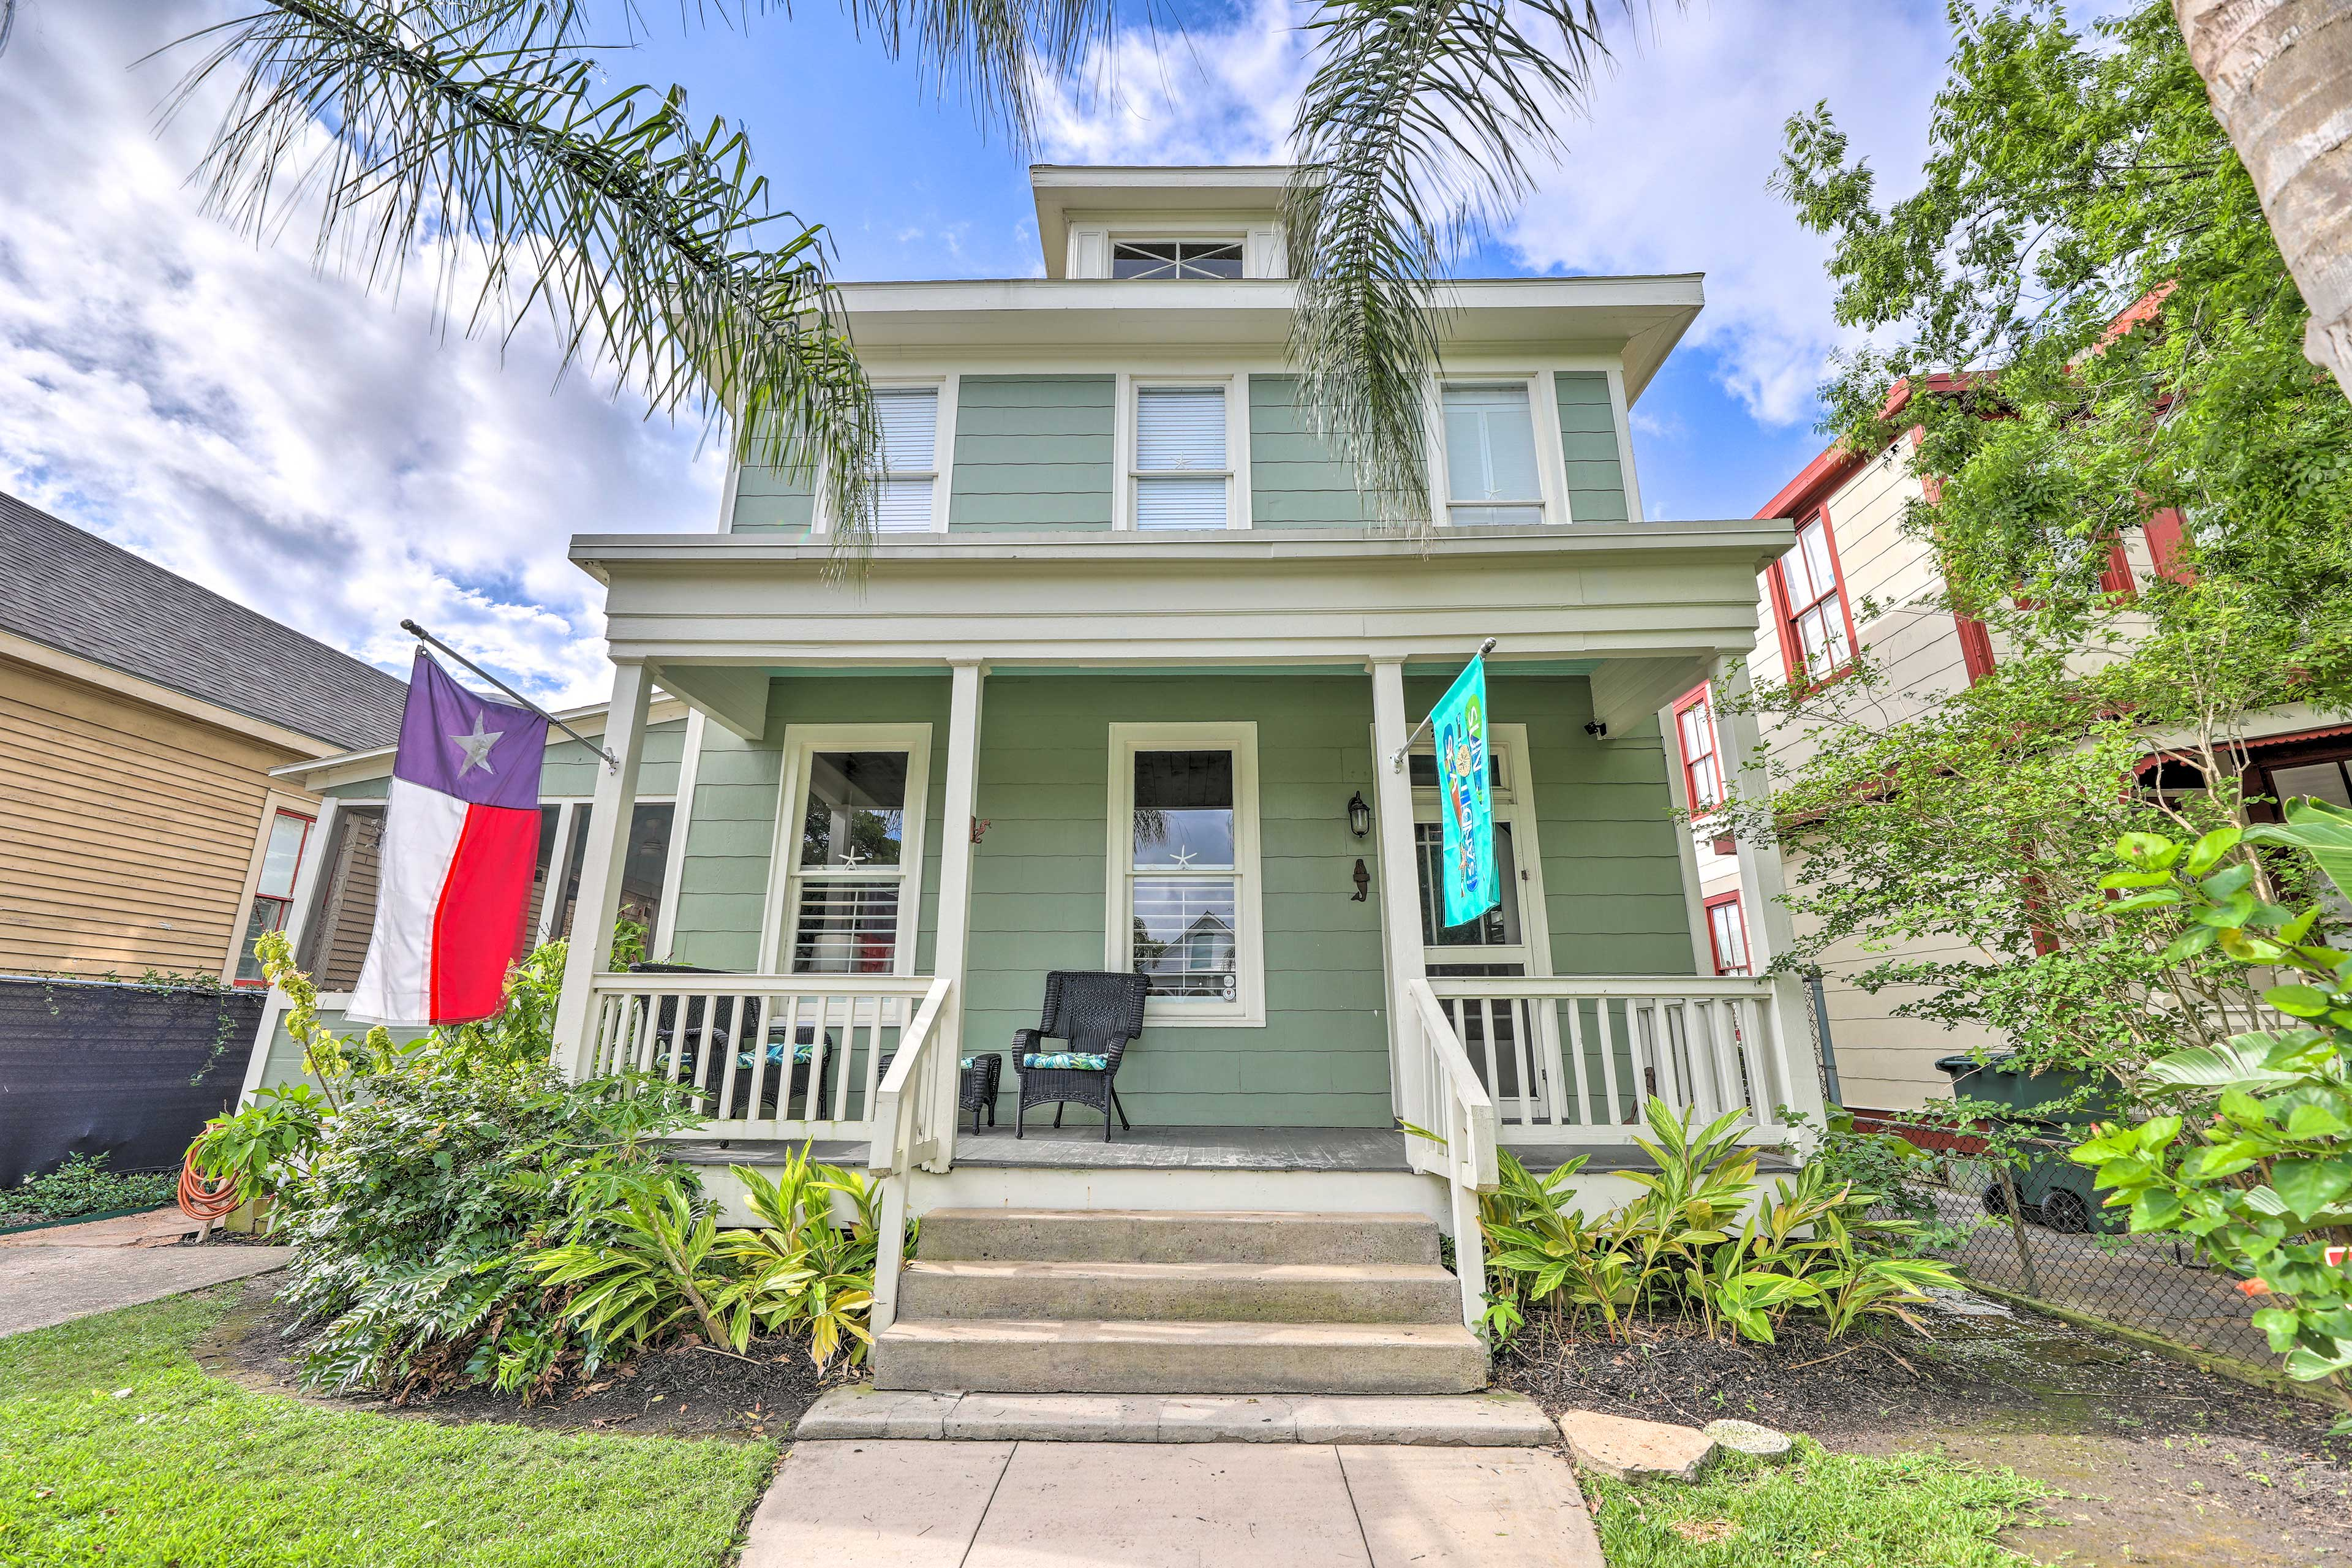 Gather loved ones for a Galveston getaway at this historic vacation rental home.